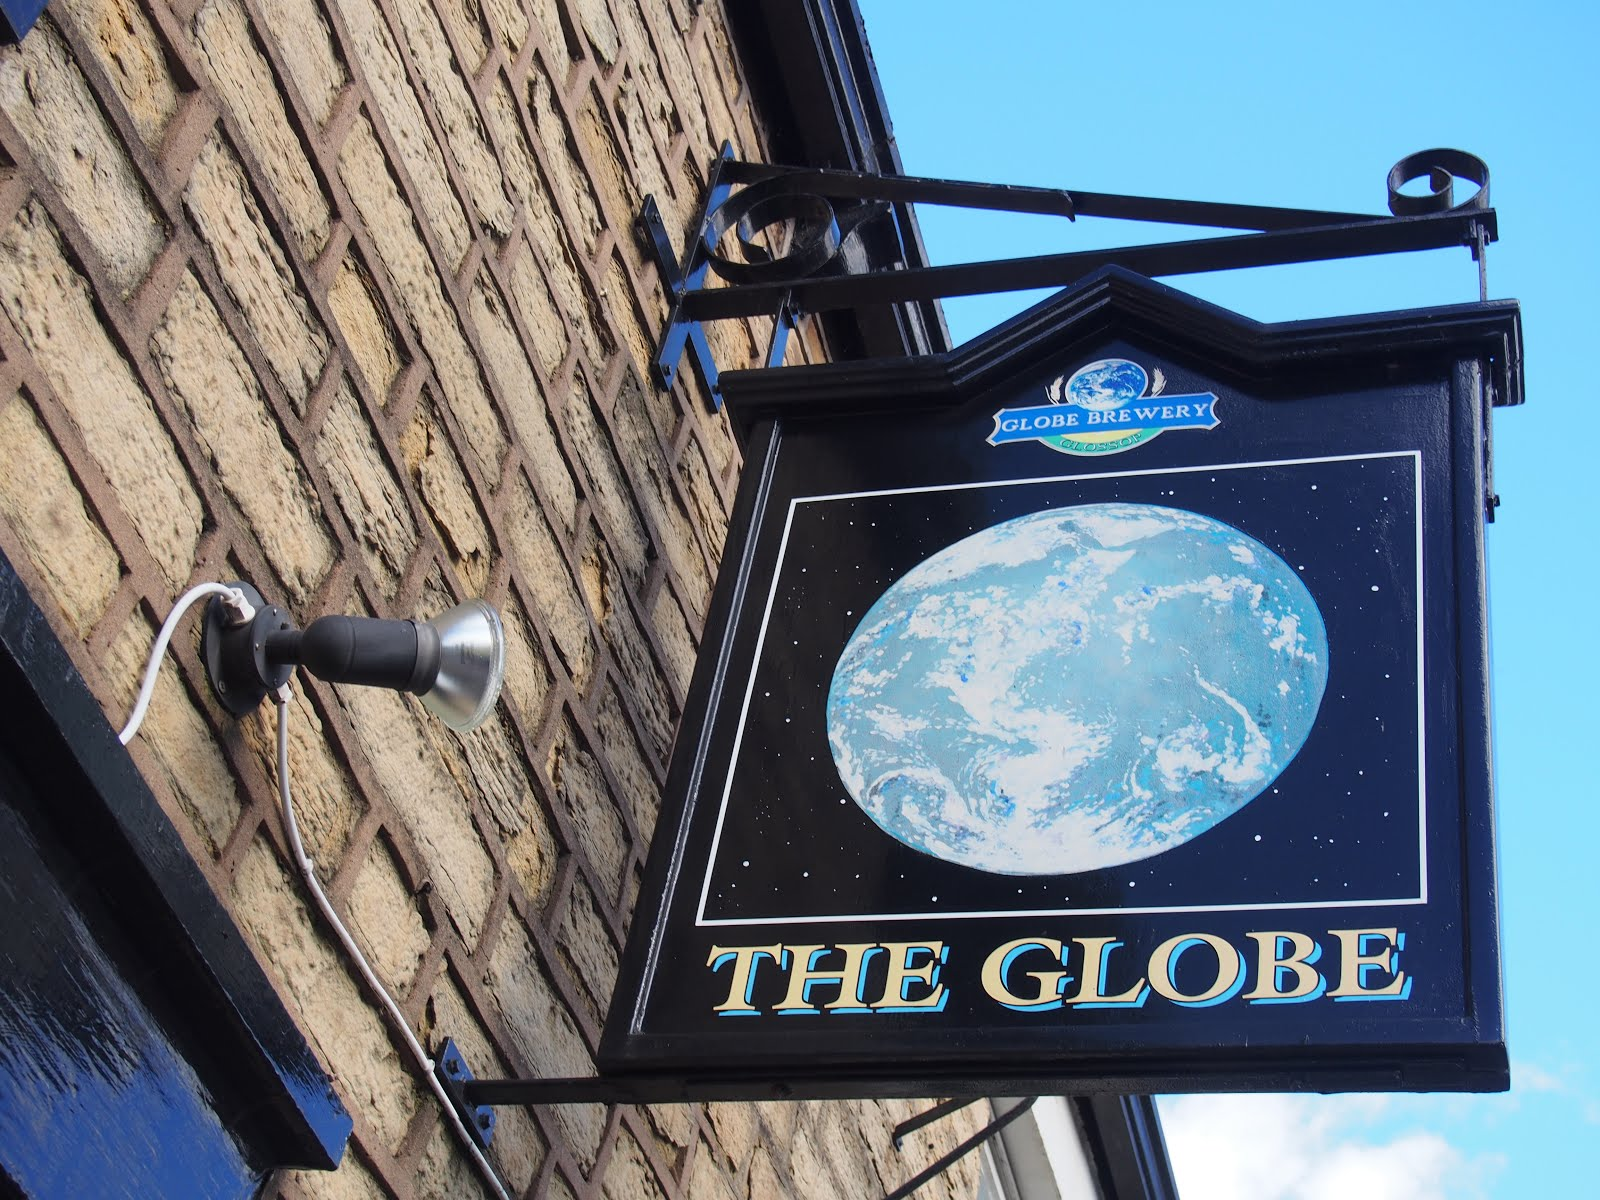 About The Globe